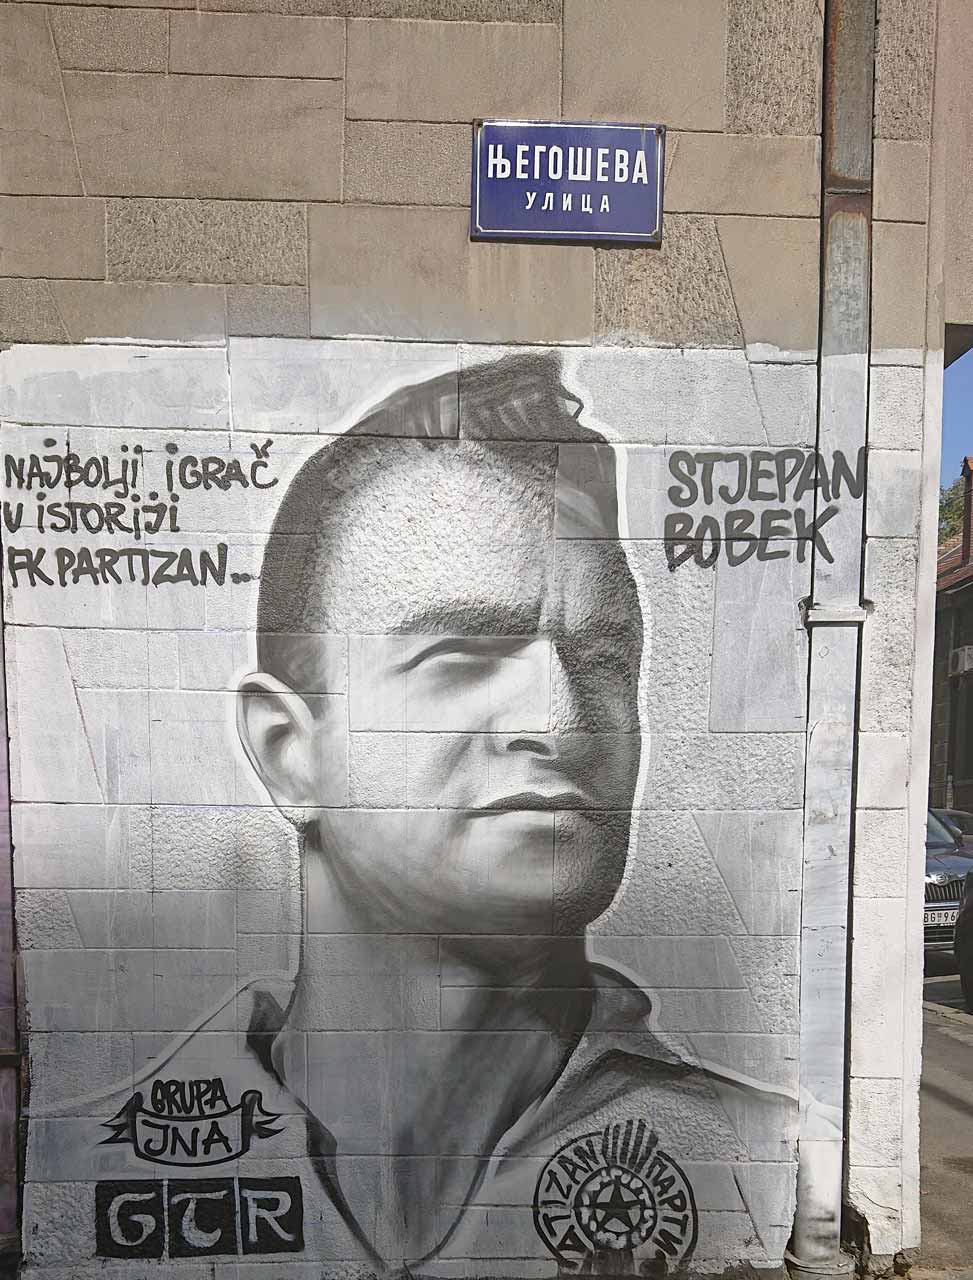 Graffiti of Stjepan Bobek in the Njegoševa street in Belgrade, 3 October 2018 (Photo: Seeott)